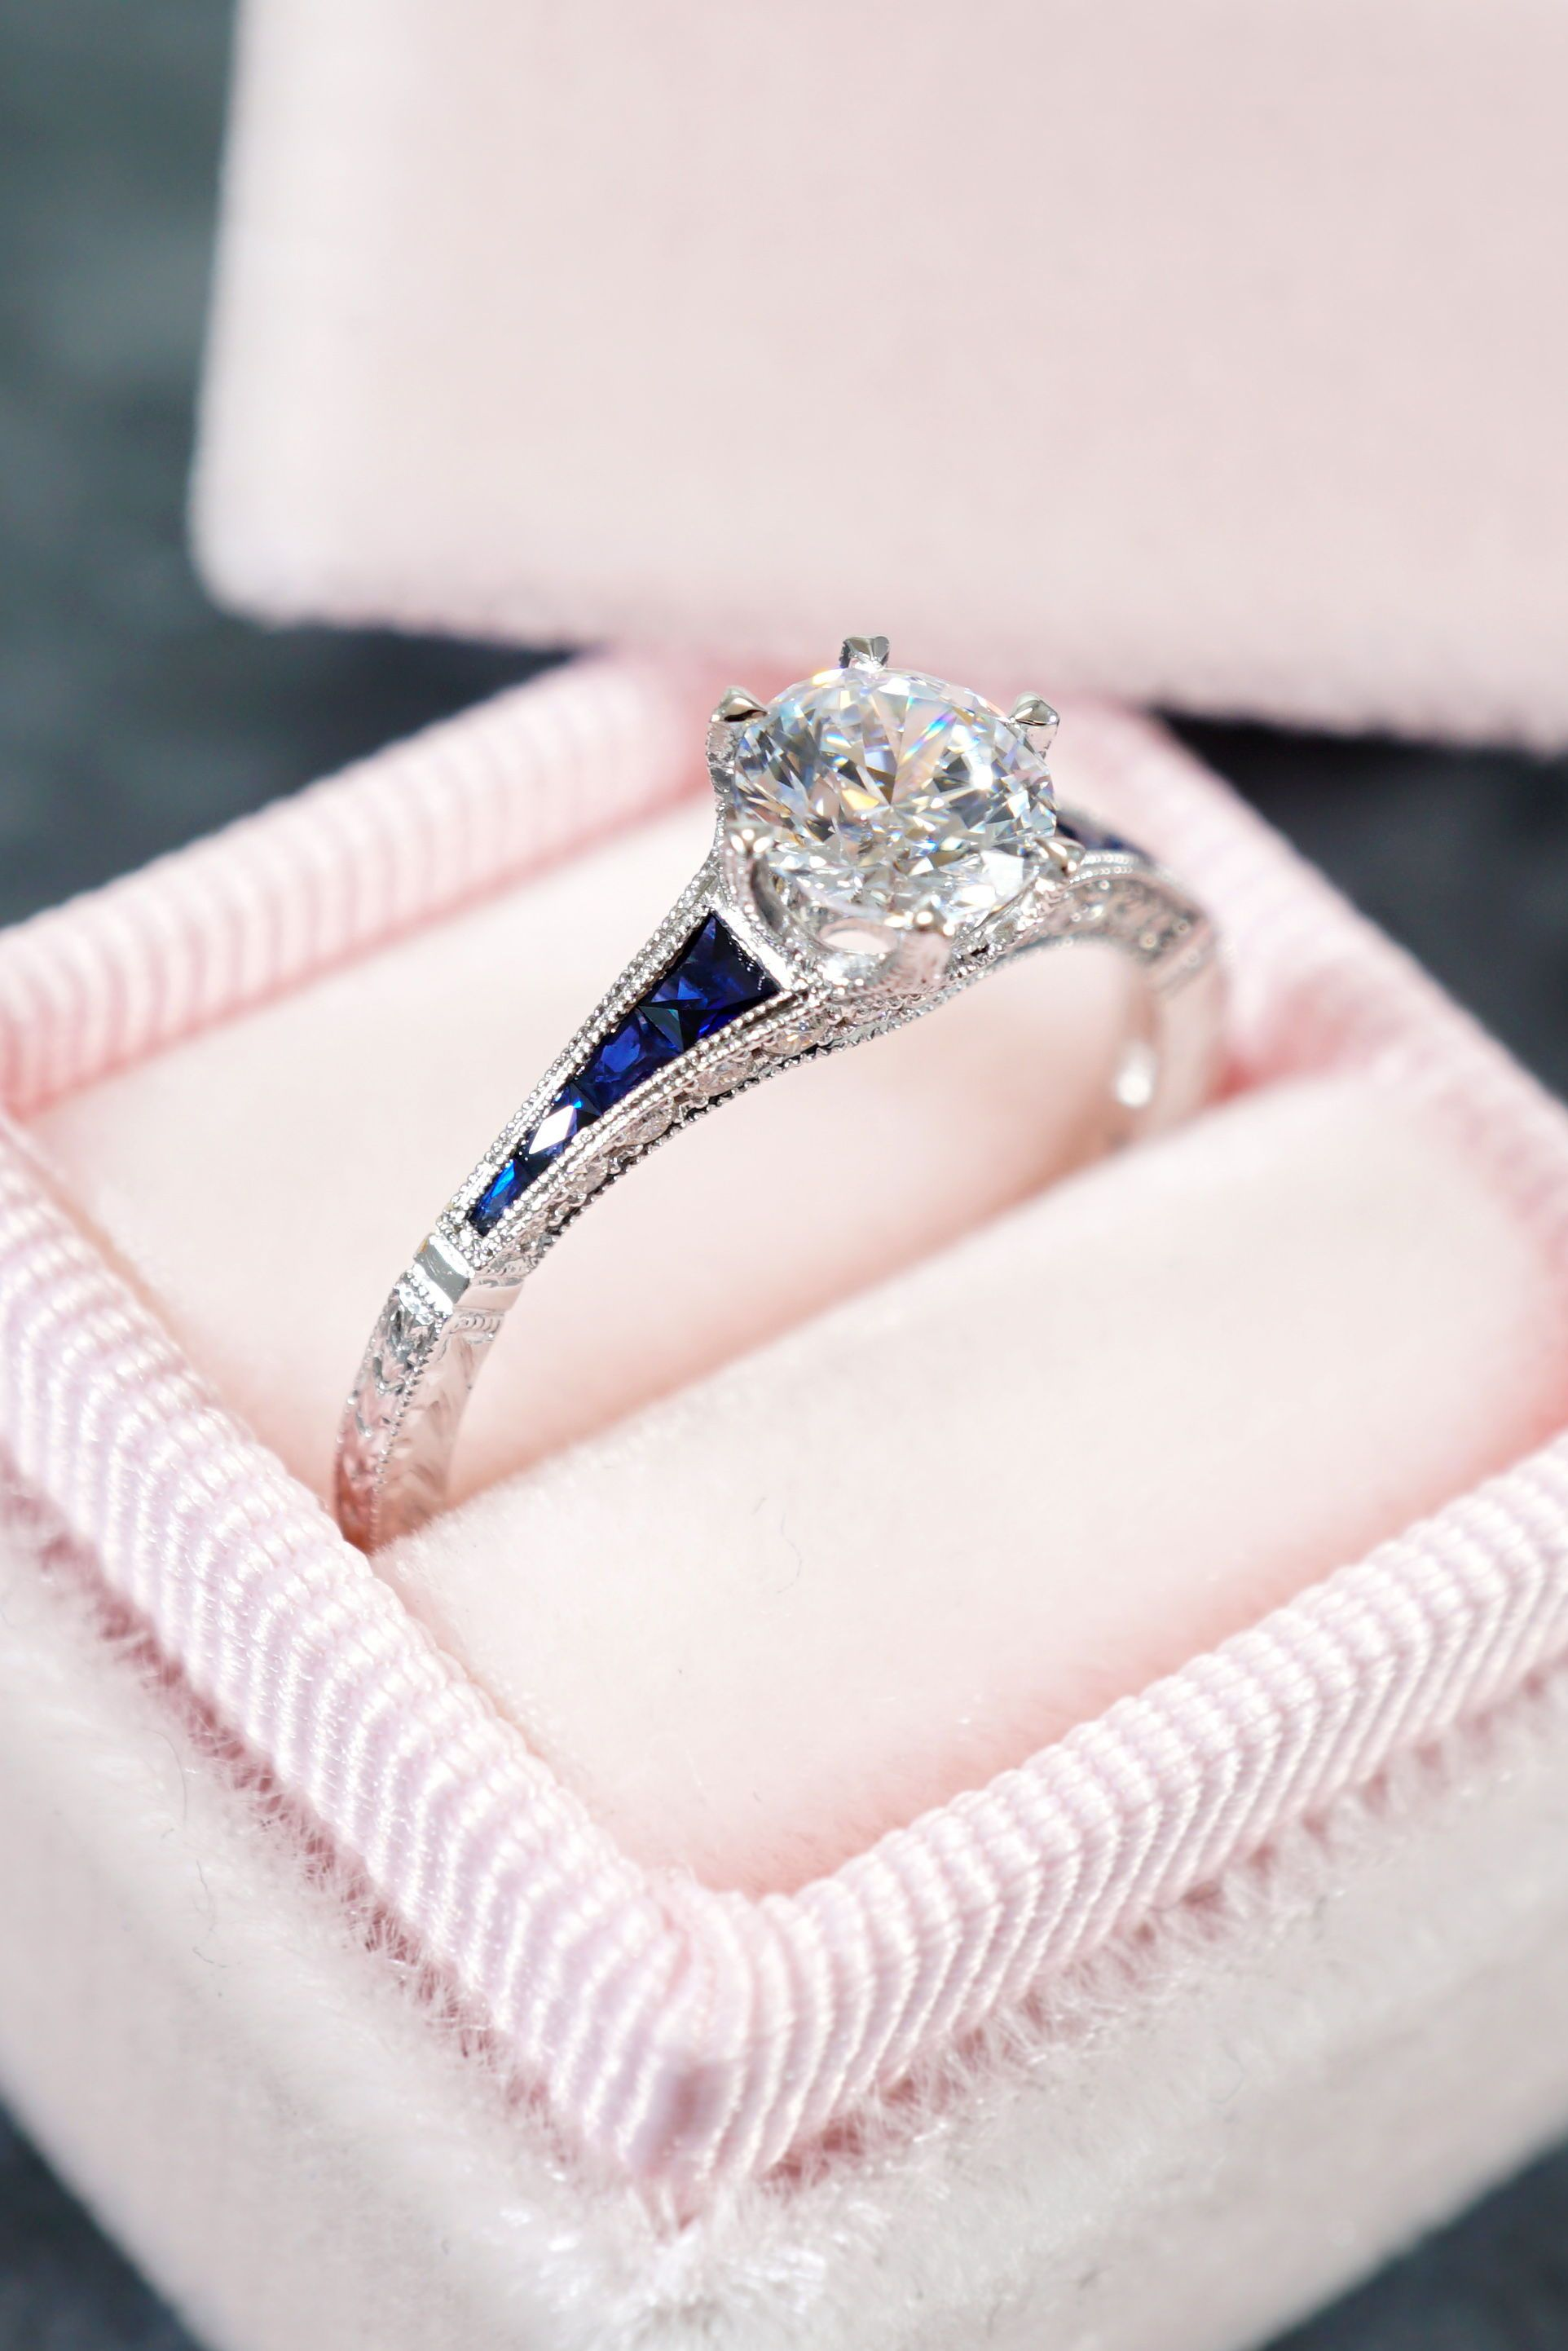 Blue Sapphire And Diamond Engagement Ring 102676 Seattle Bellevue Joseph Jewelry Antique Engagement Rings Engagement Rings Sapphire Diamond Wedding Bands